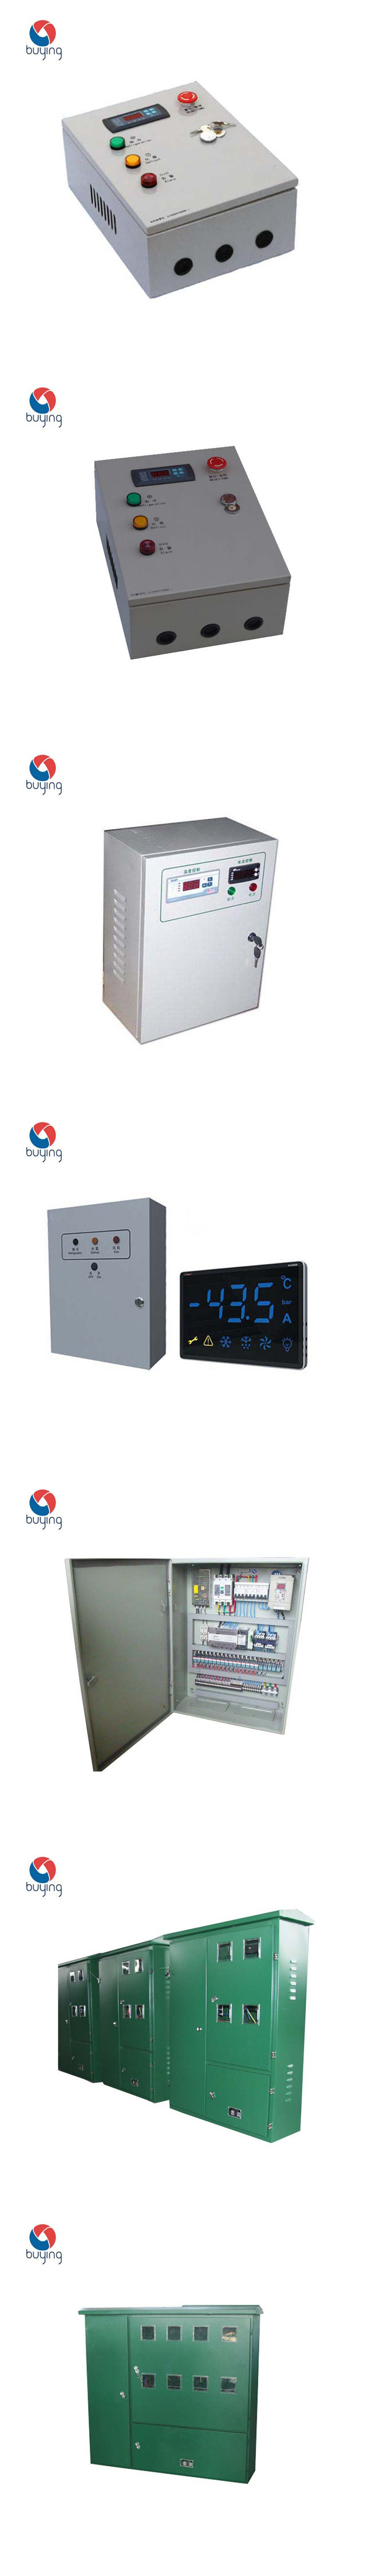 Waterproof Cabinet Panel Board Electrical Distribution Box